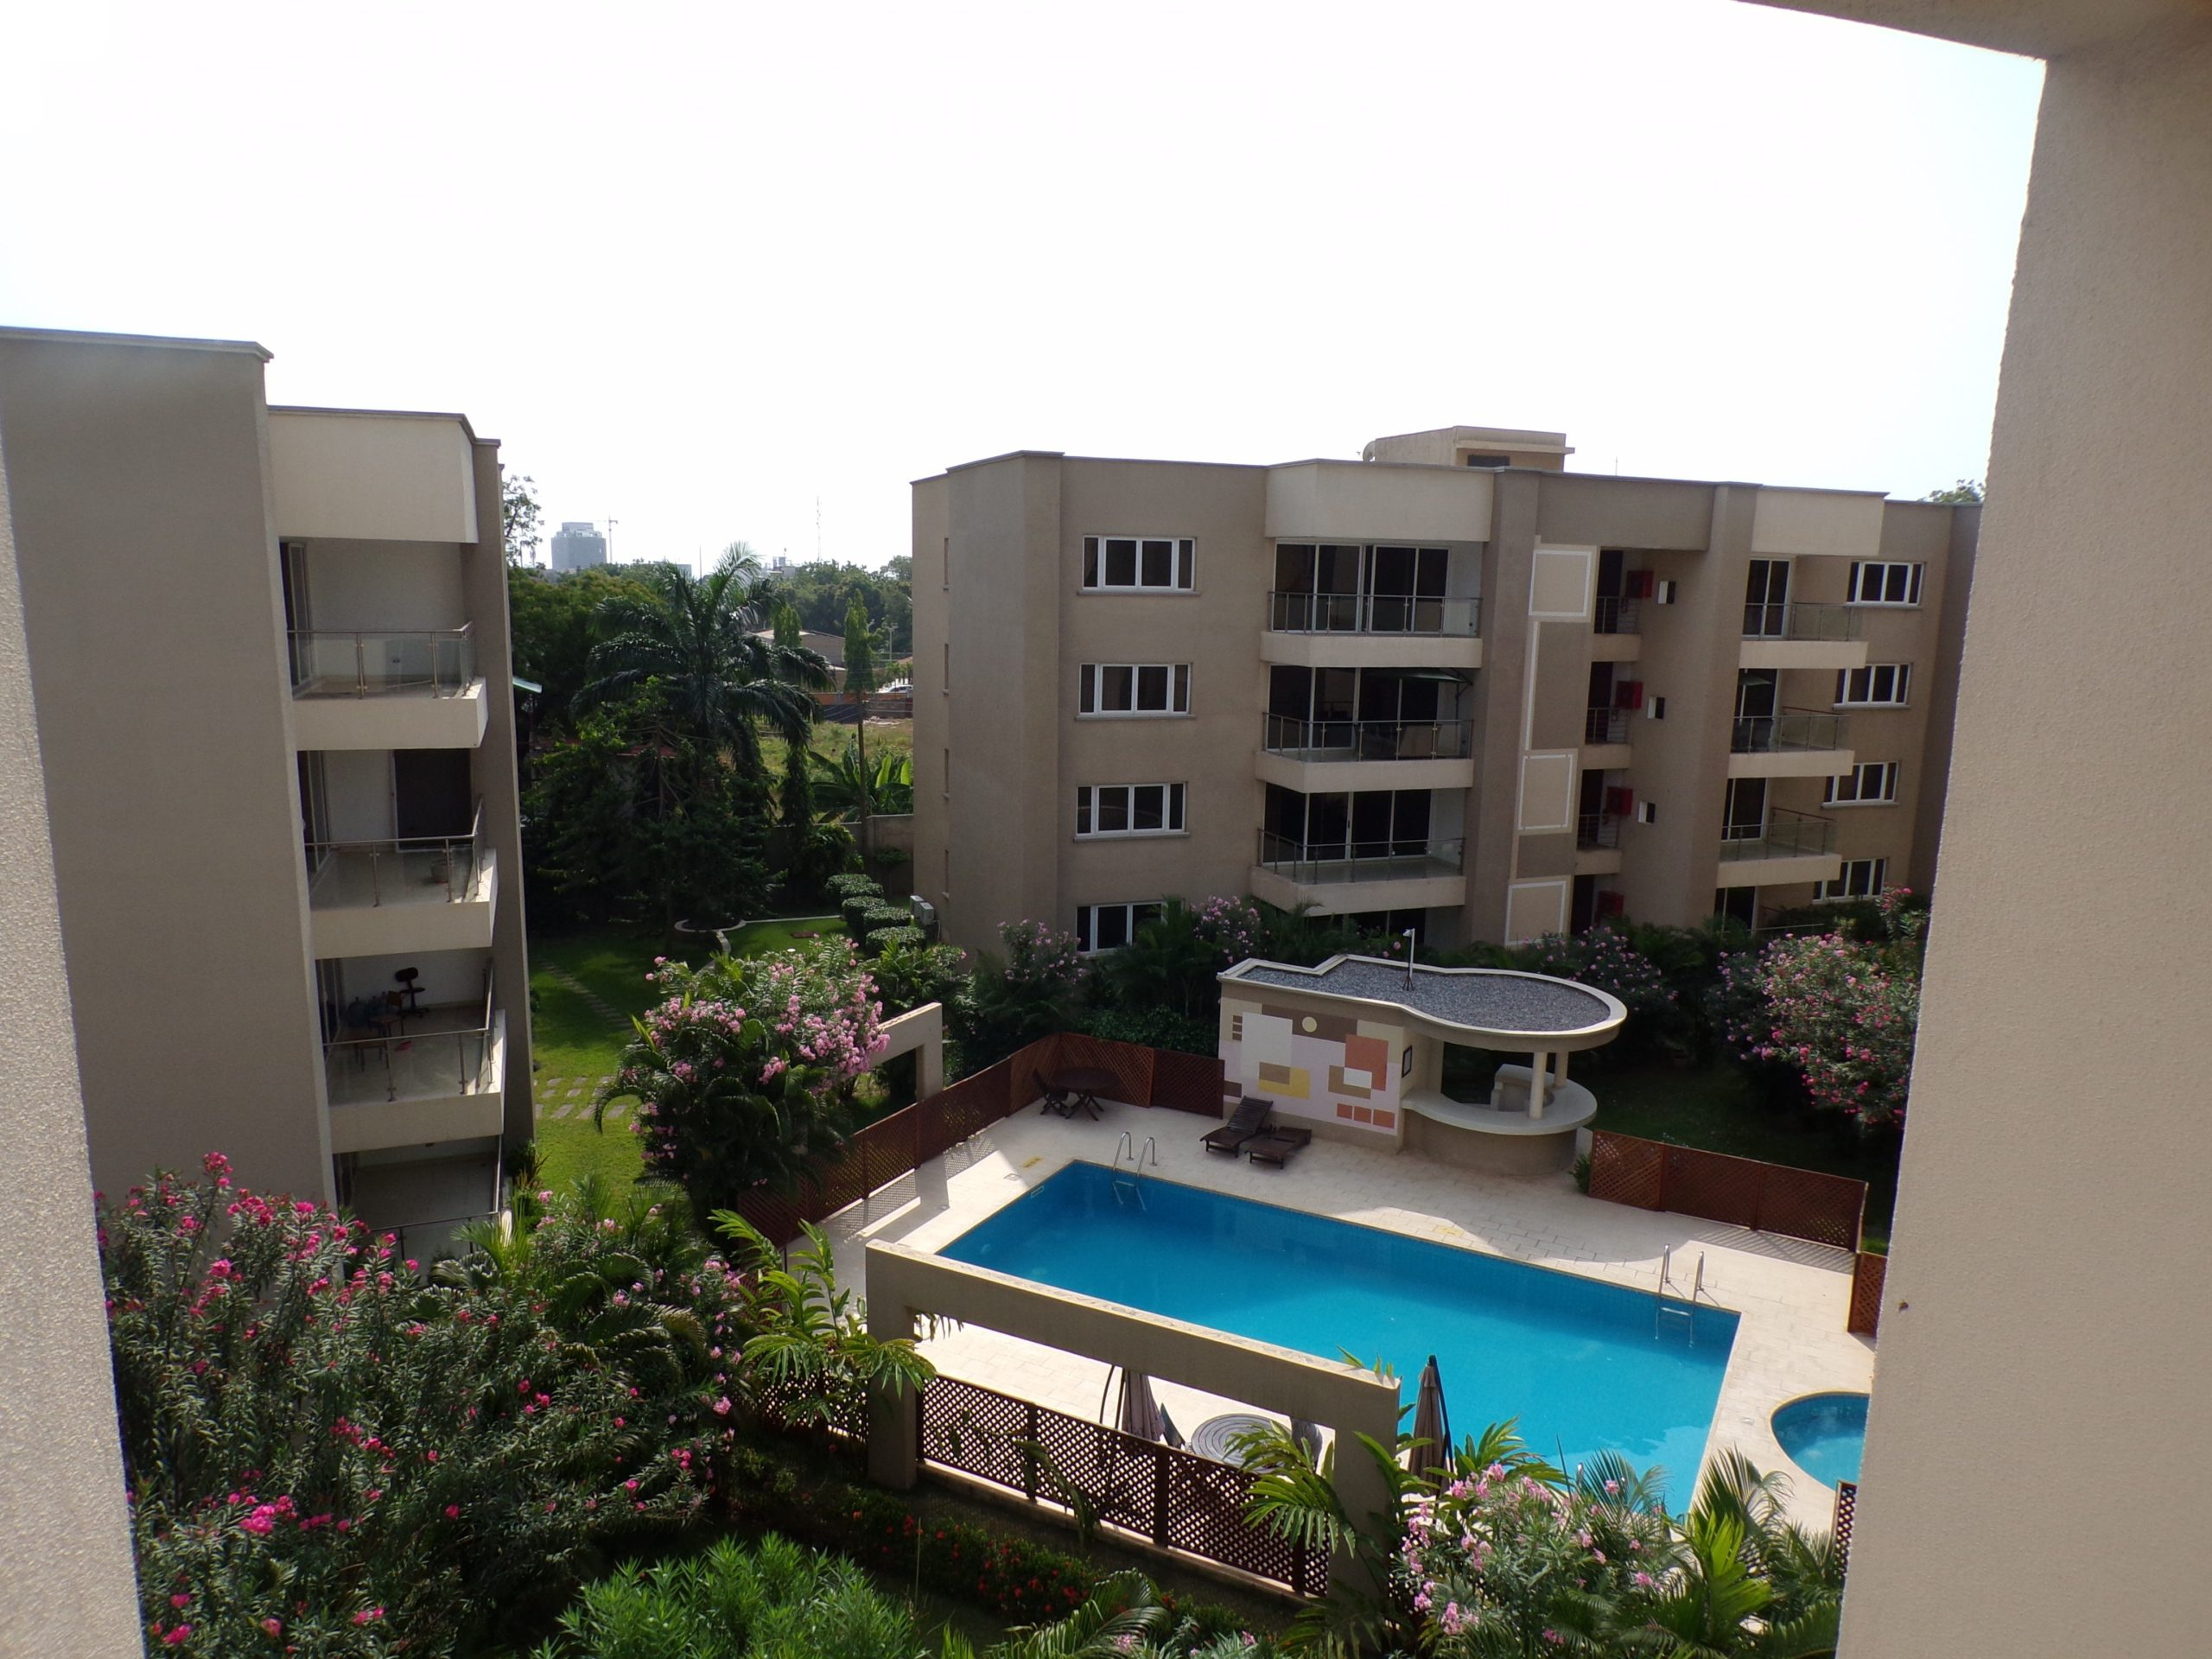 3 BEDROOM FURNISHED APARTMENT FOR RENT AT INDEPENDENCE AVENUE